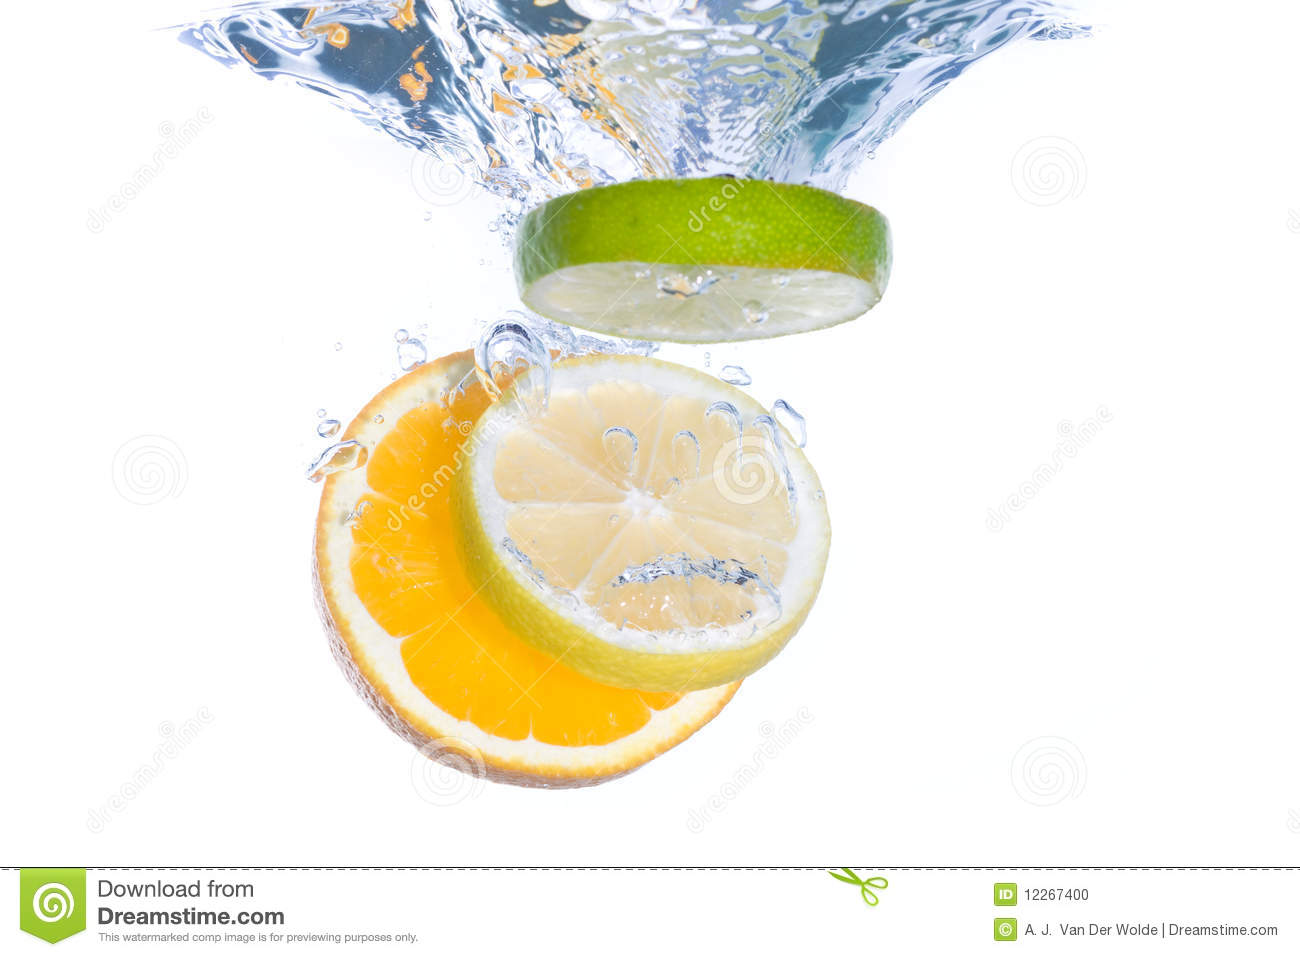 fruit and water is lemon a fruit